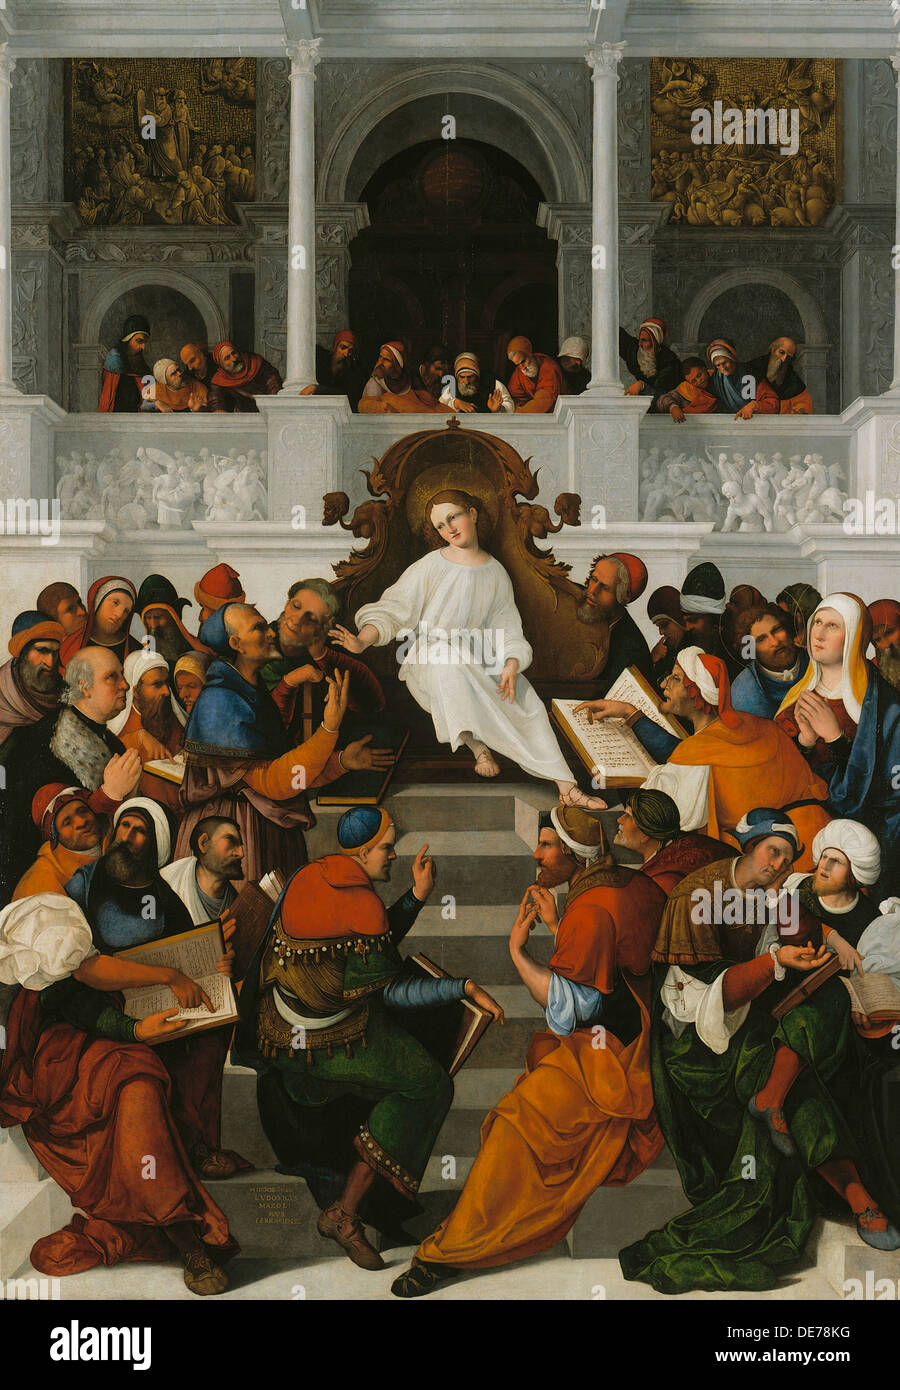 The Twelve-Year-Old Jesus Teaching in the Temple, 1524. Artist: Mazzolino, Ludovico (1480-1528) - Stock Image